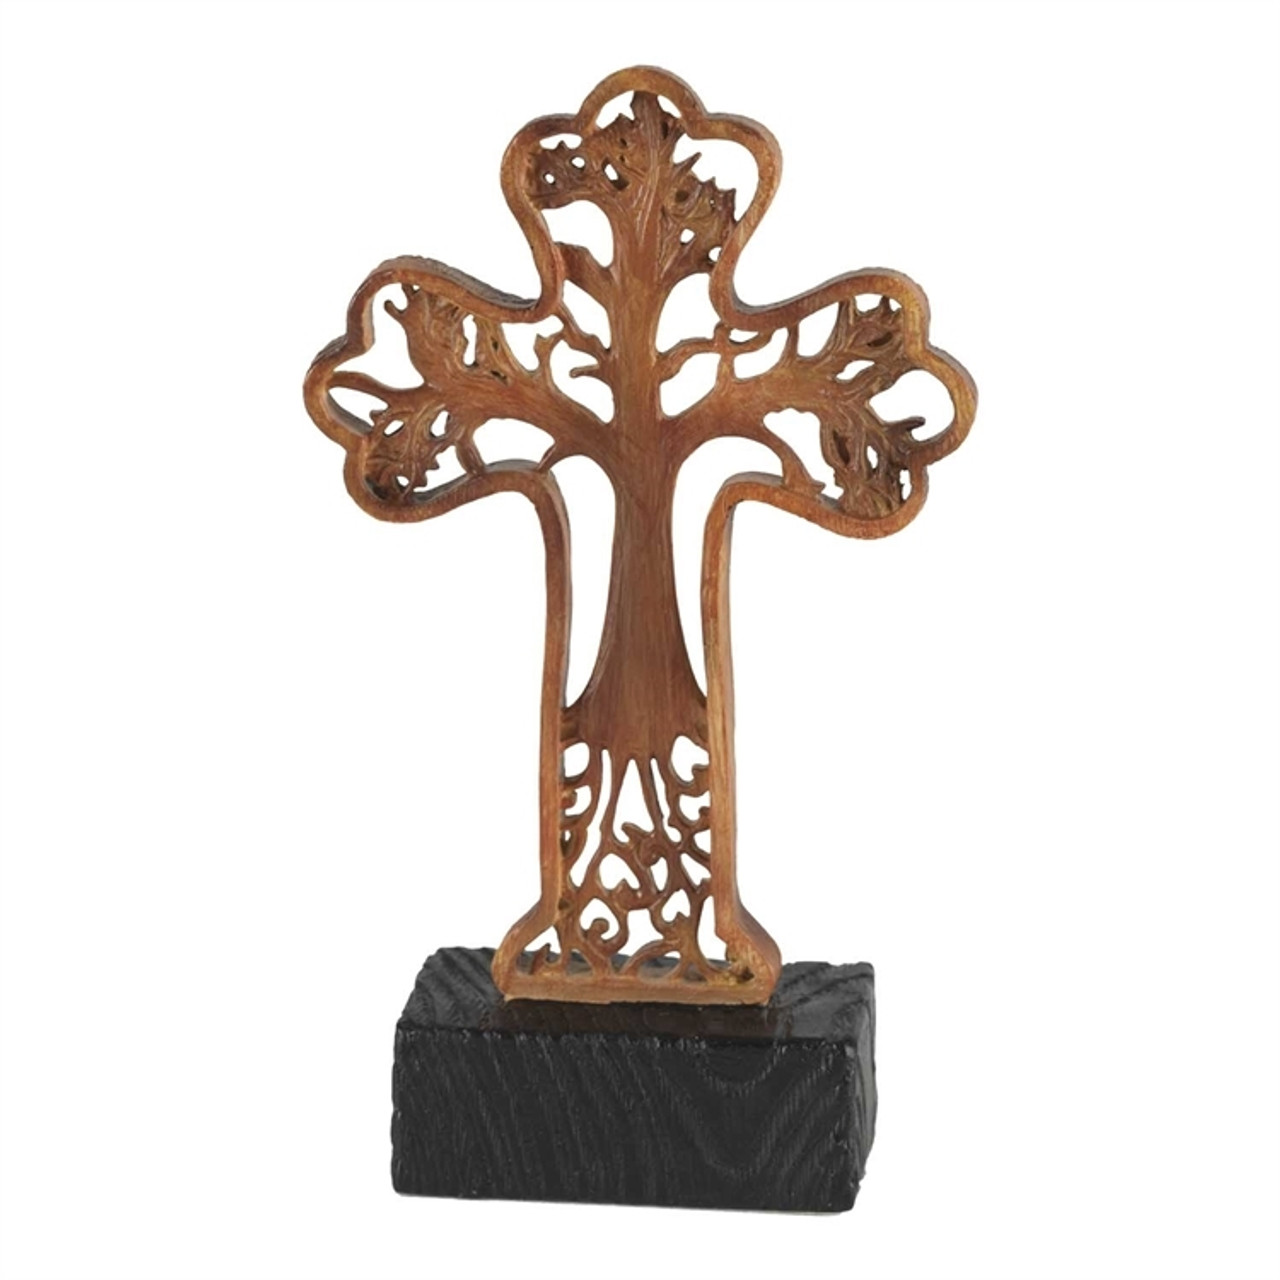 Tree Of Life Tabletop Cross In Resin With A Wood Toned Finish Height 6  Inches TTCR312